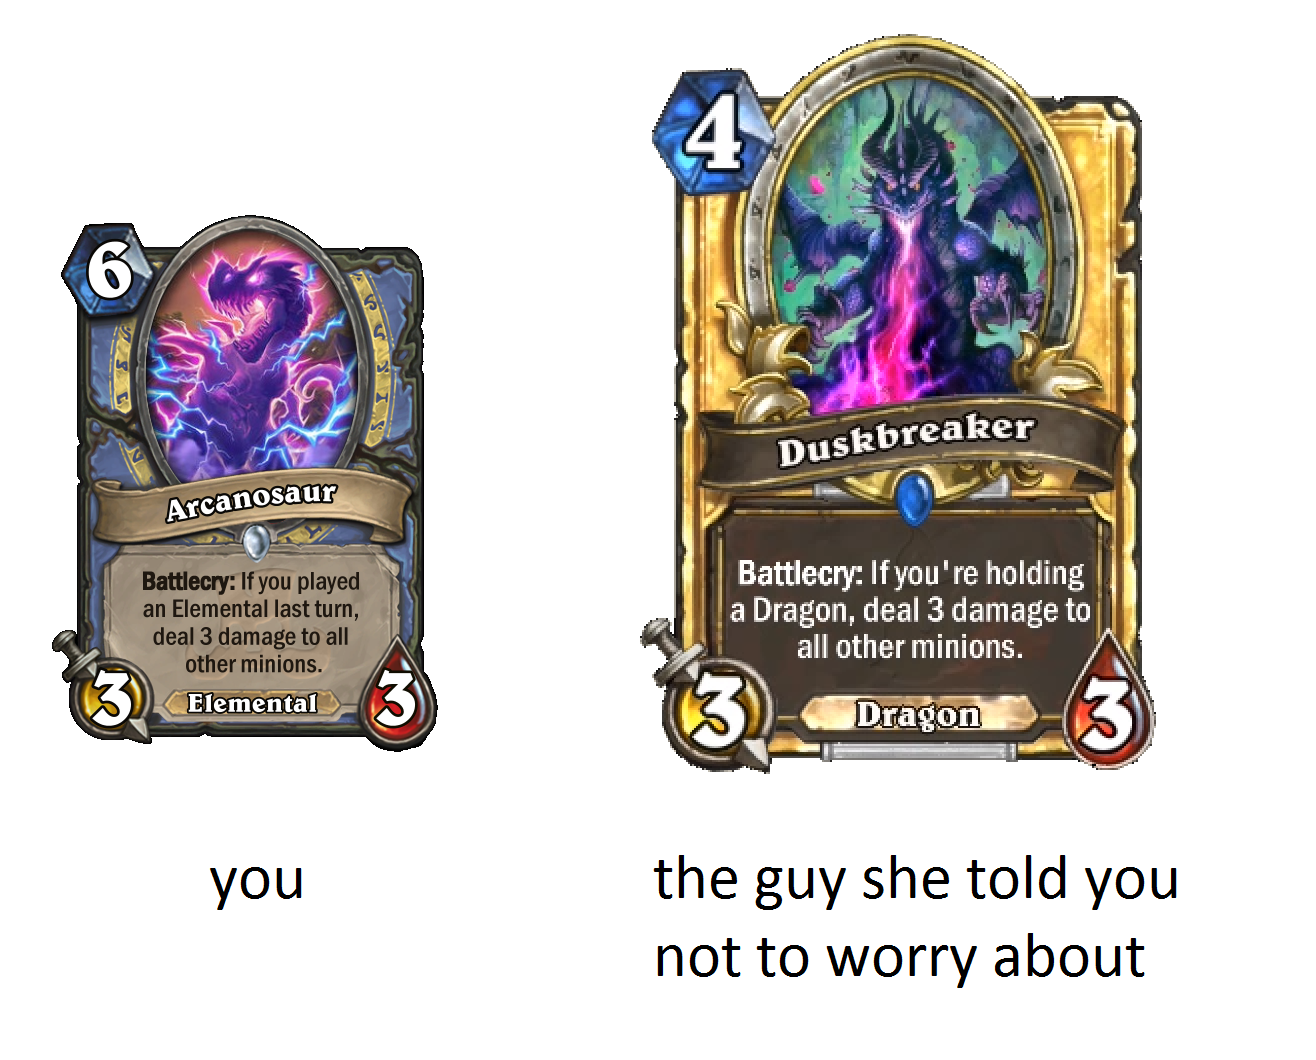 you vs. the guy